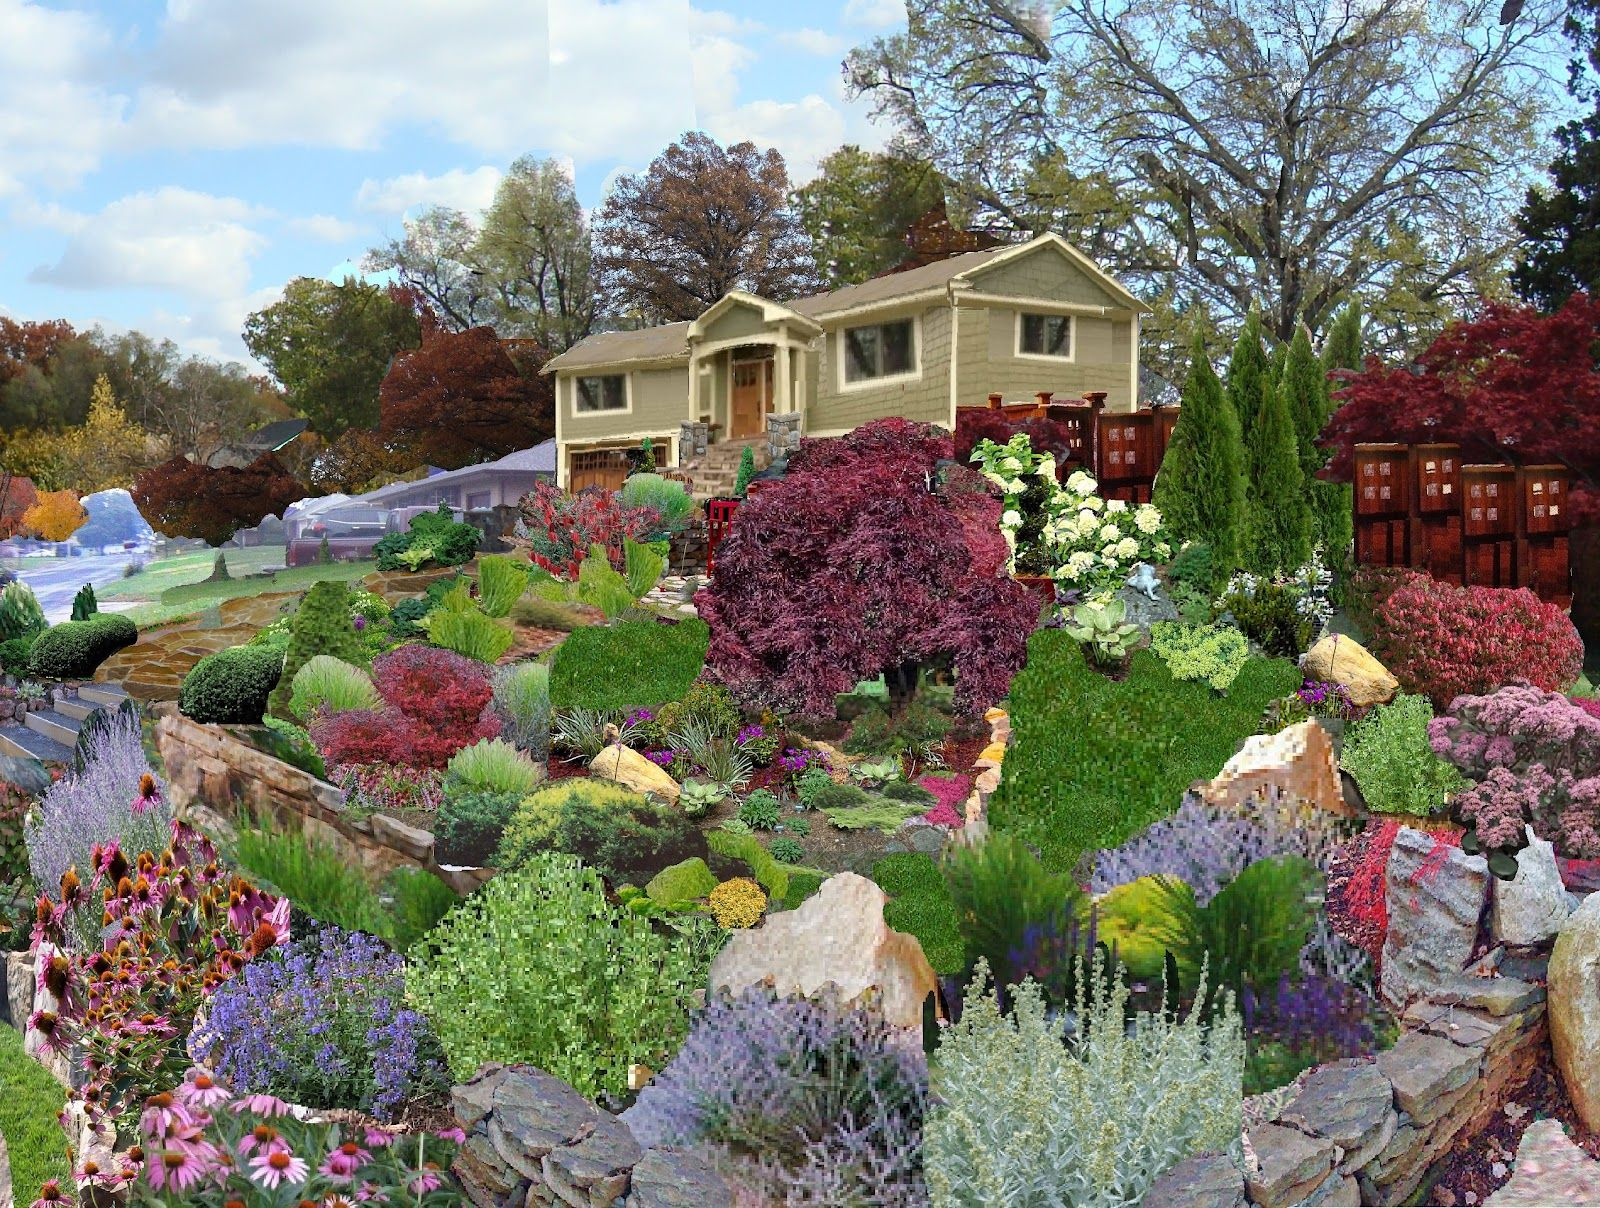 stone landscaping ideas google search on beautiful front yard rock n flowers garden landscaping ideas how to create it id=16070